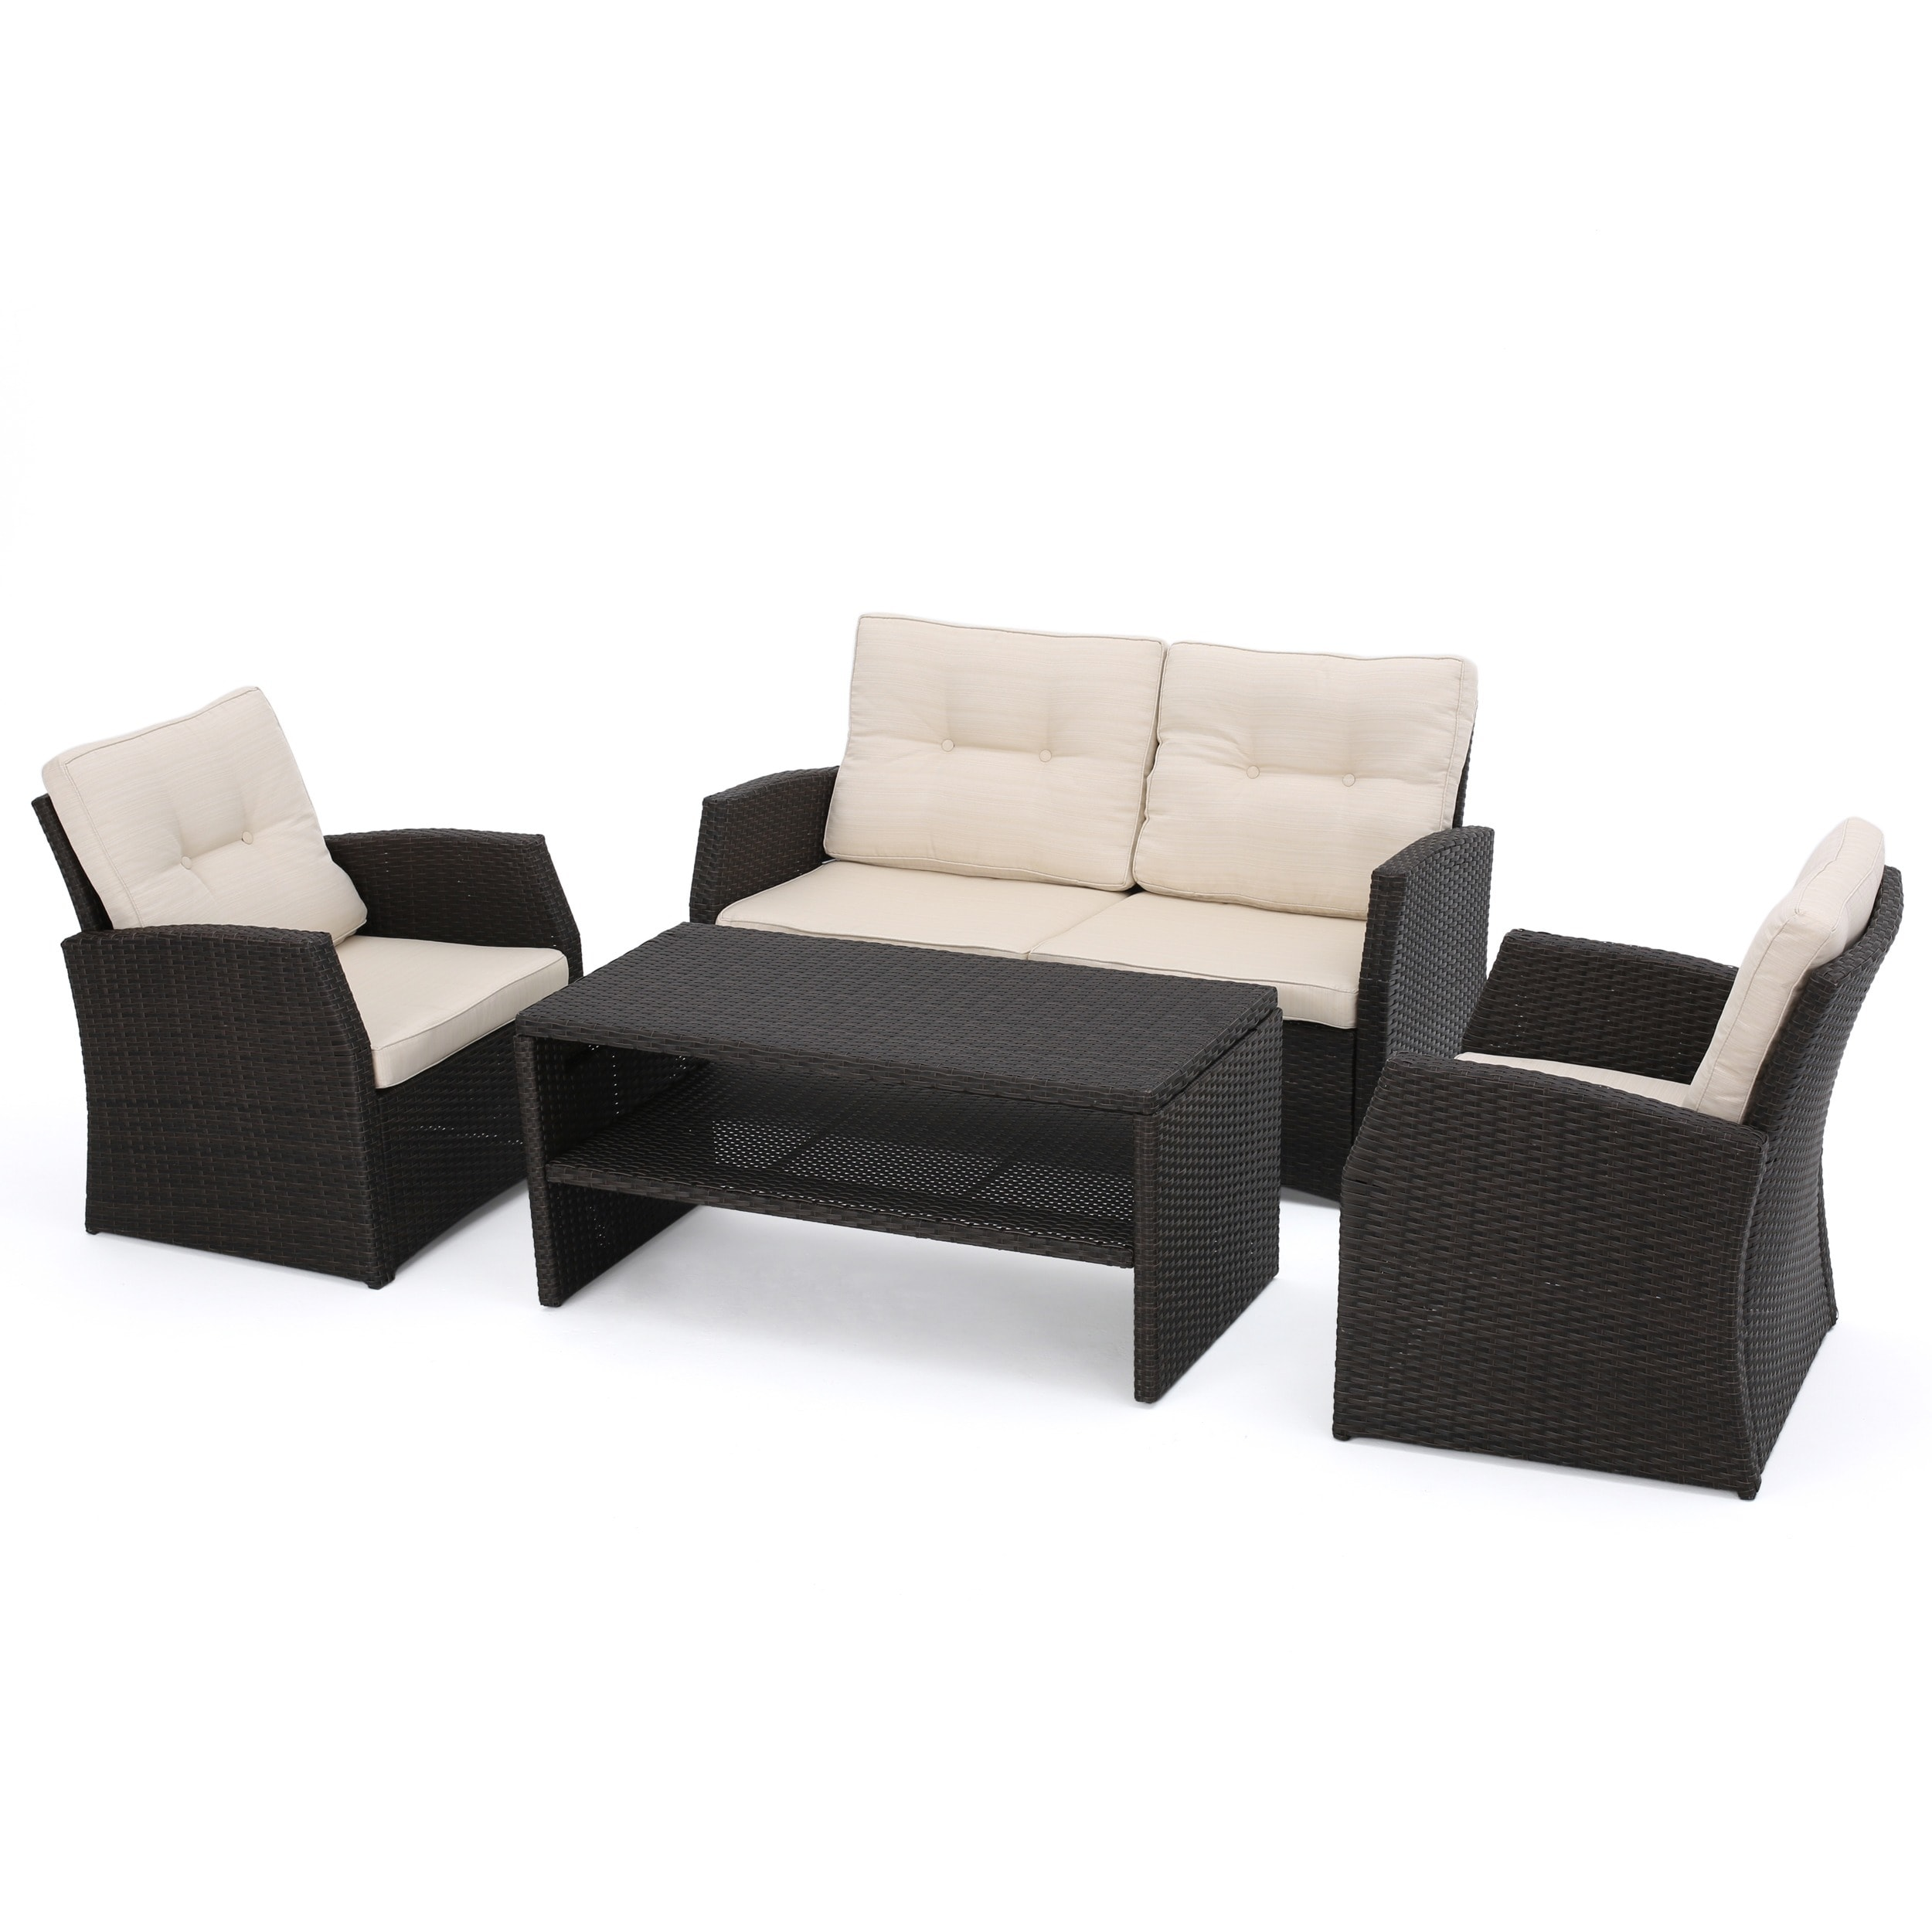 Sanger Outdoor 4-piece Wicker Seating Set by Christopher Knight ...